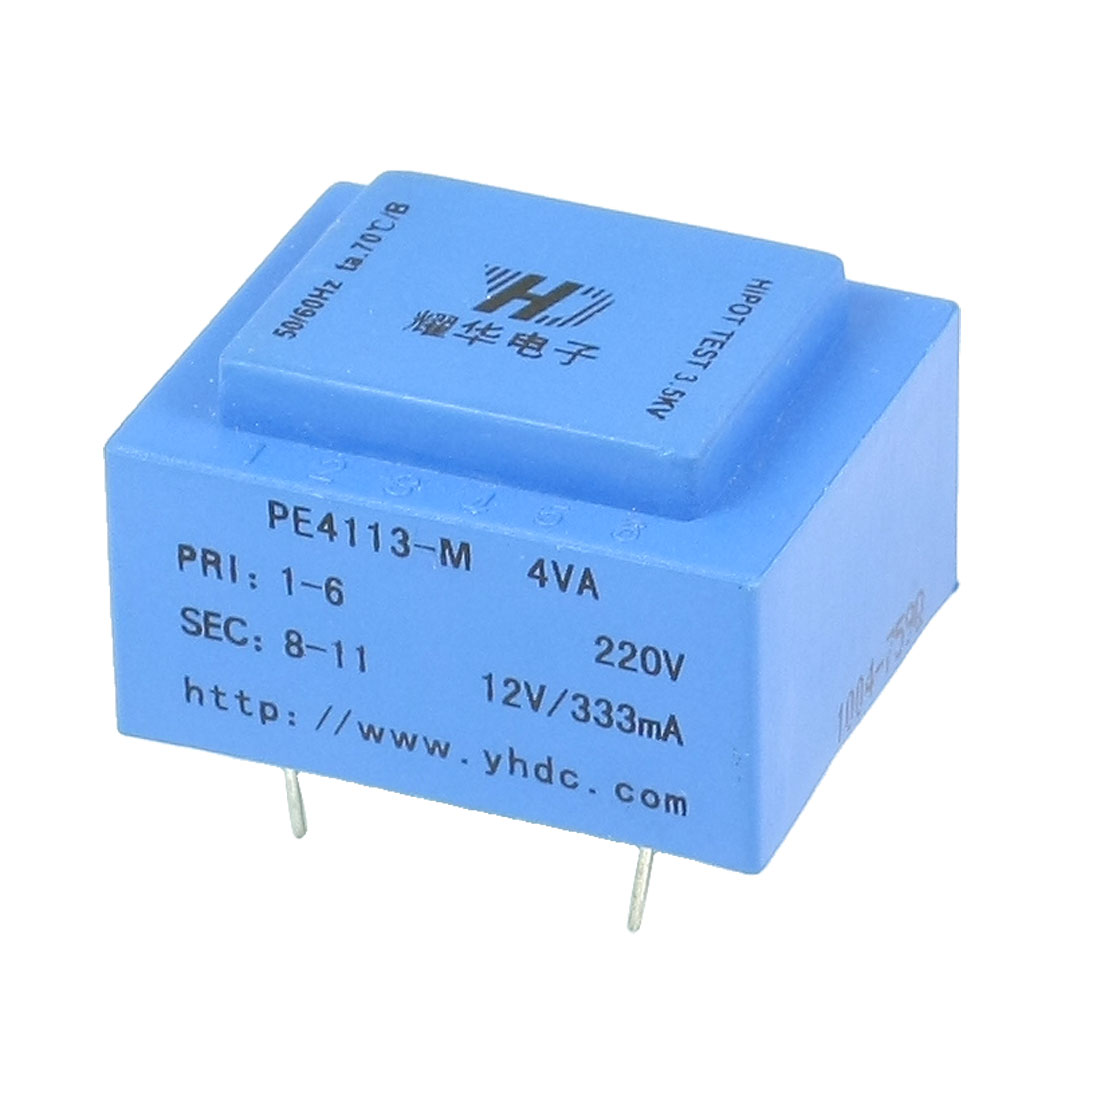 PE4113-M 4VA 50/60 Hz 12V 333mA Output Mains Encapsulated Transformer